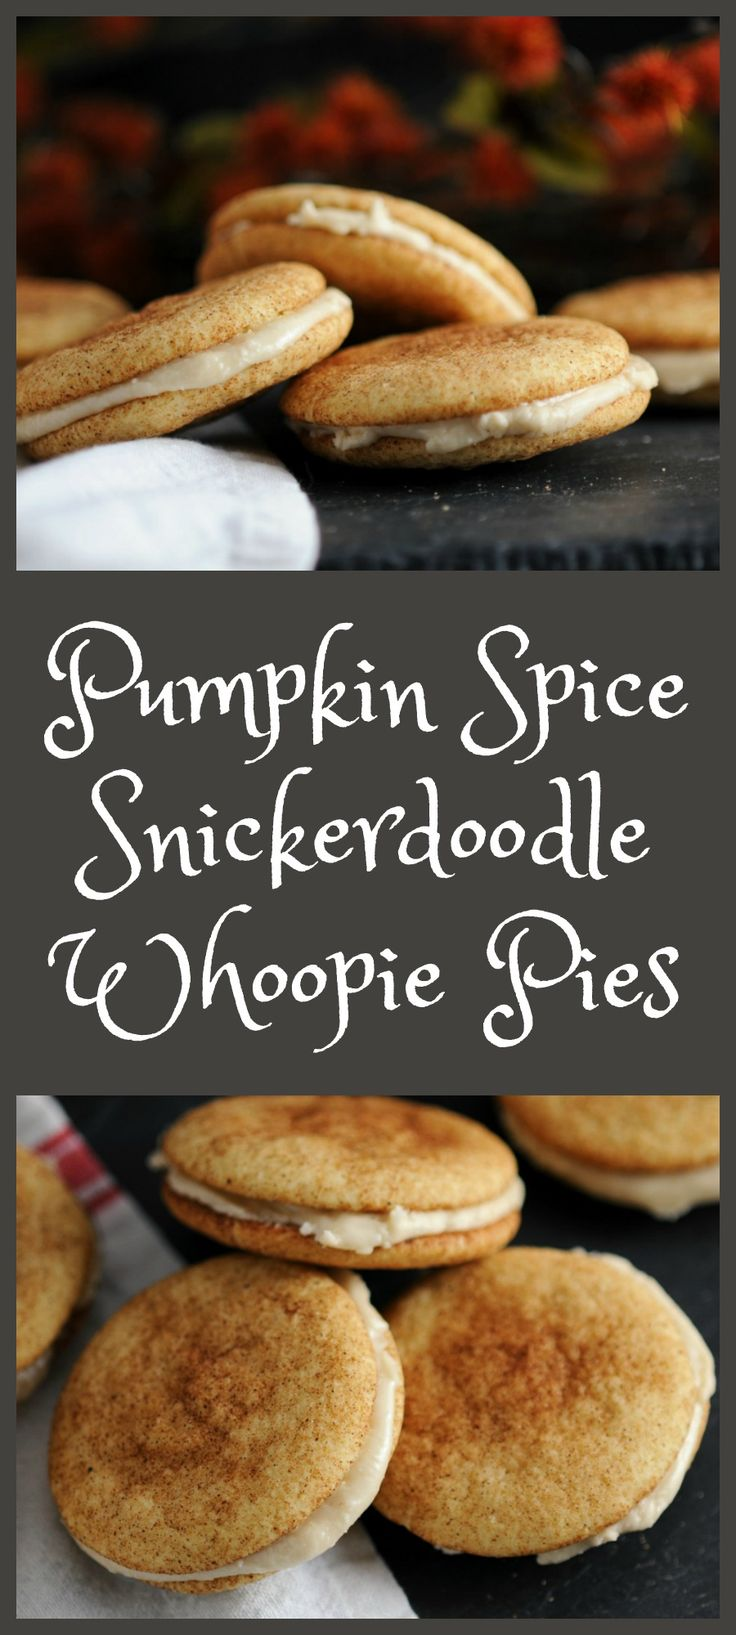 Pumpkin Spice Snickerdoodle Whoopie Pies - Amaretto Cream filling, or with almond extract  #cookies #pumpkins #desserts #easy